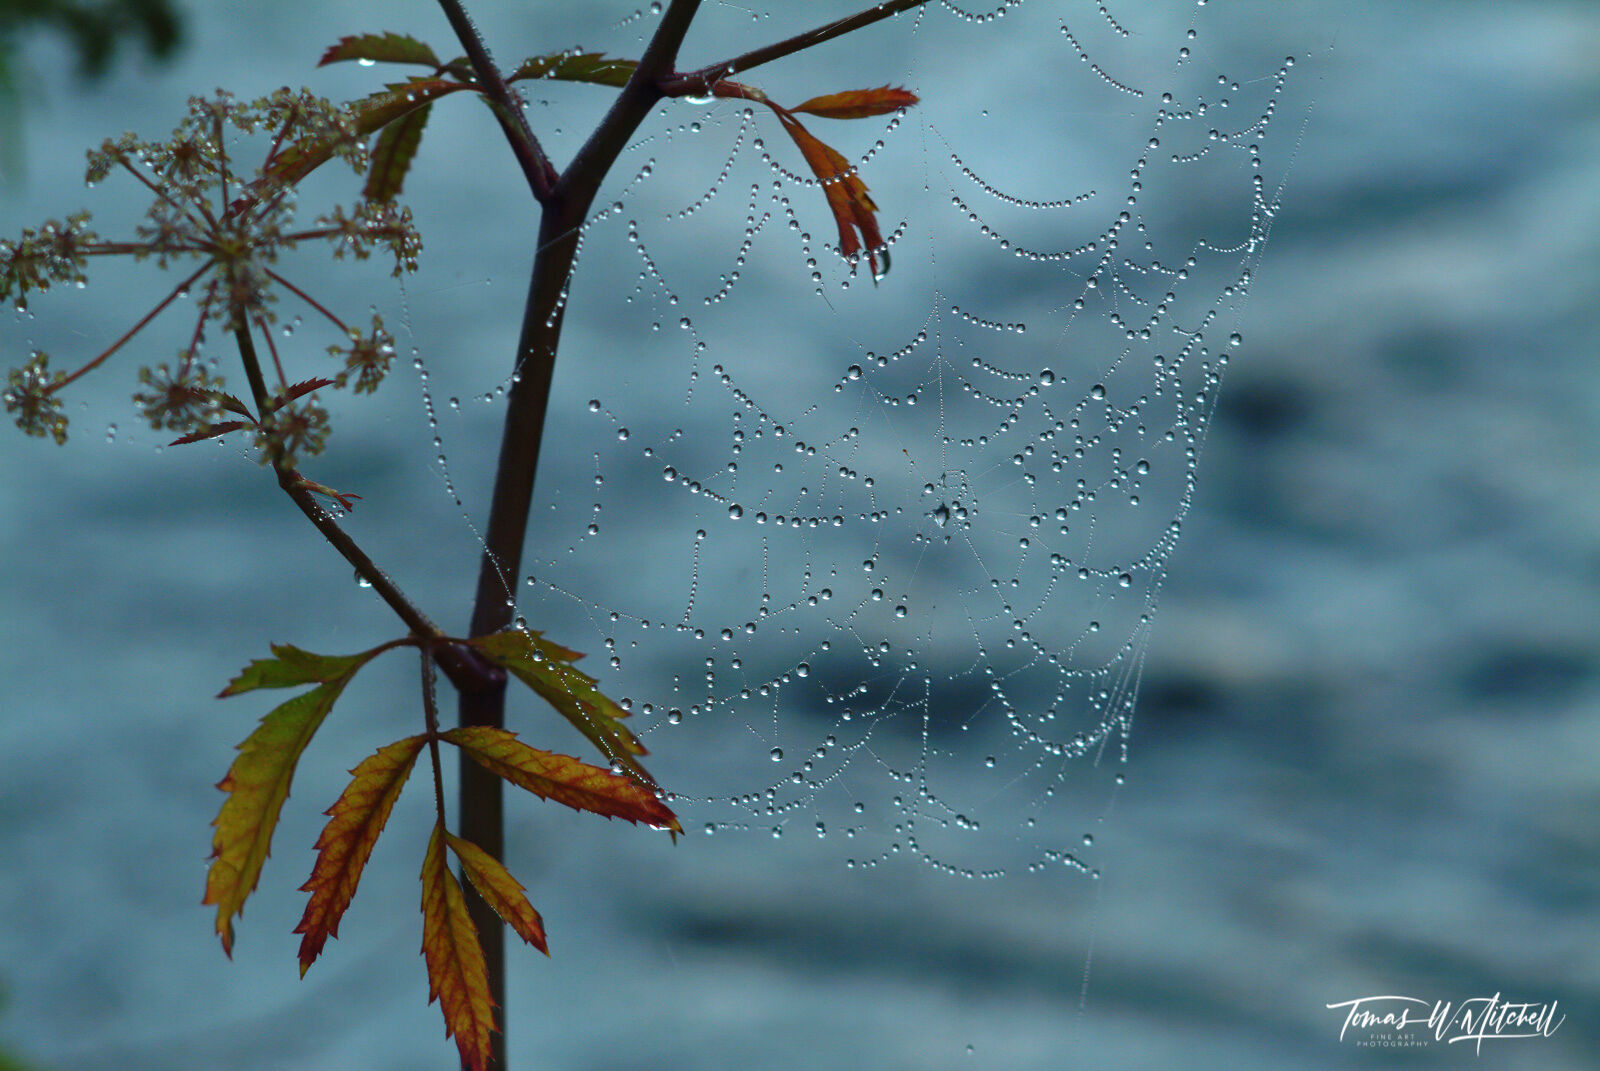 spider web covered in droplets of water in Yellowstone